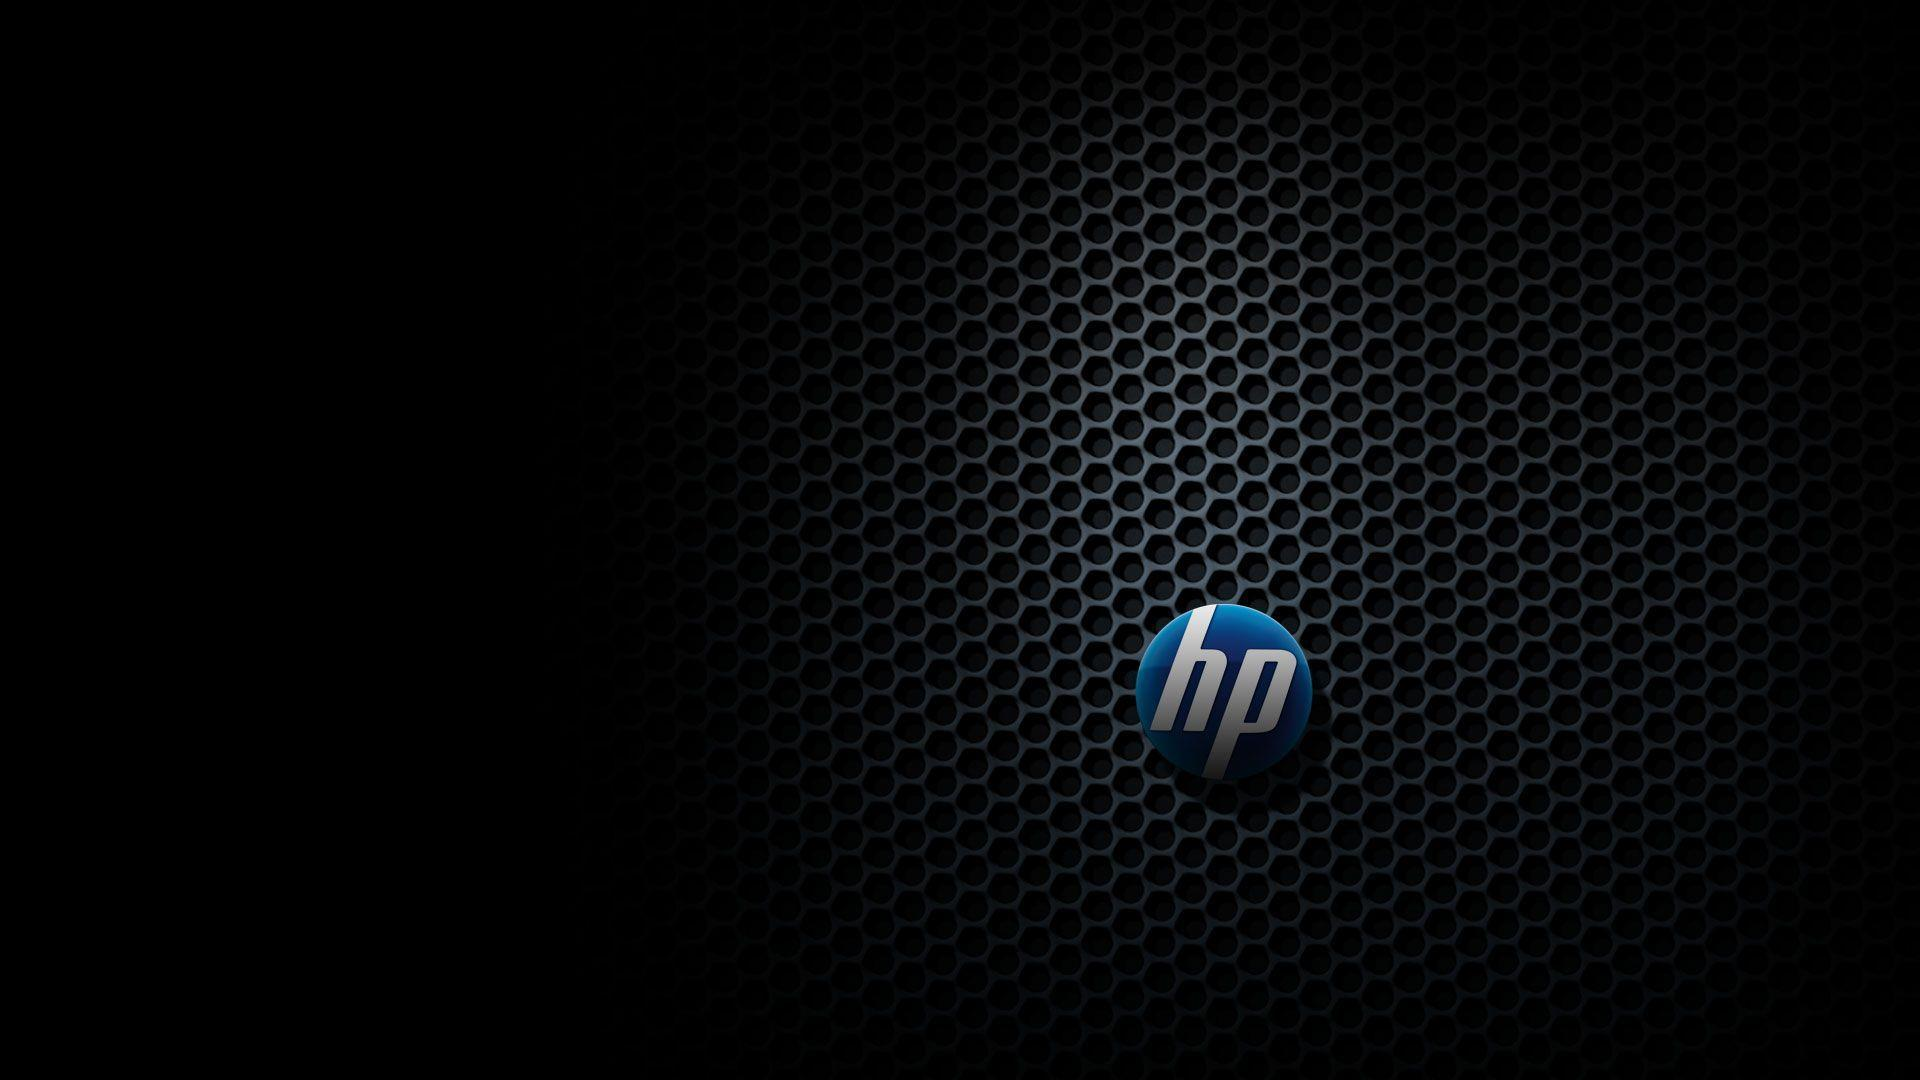 Hd Hp Wallpapers Wallpaper Cave HD Wallpapers Download Free Images Wallpaper [1000image.com]